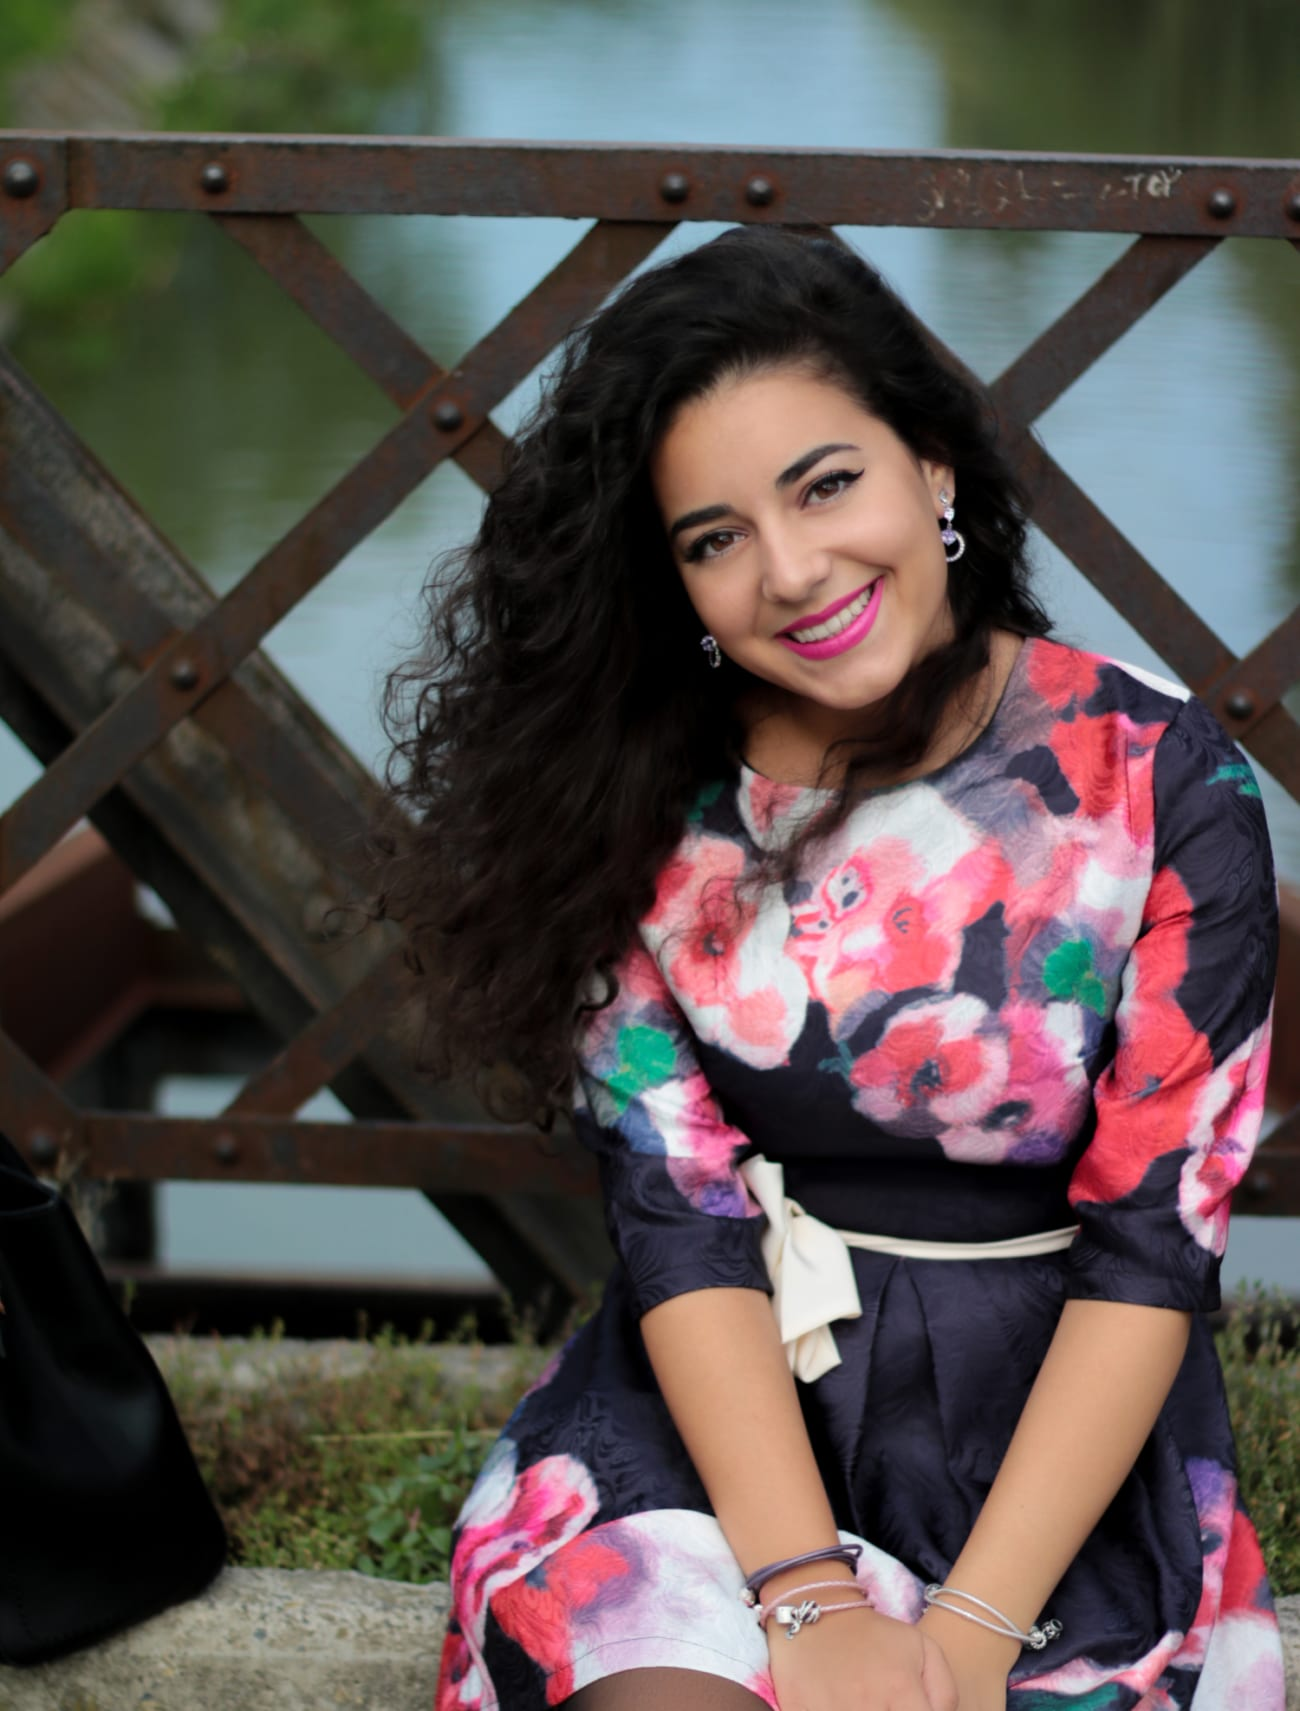 top-fashion-pareri-roxi-rose-timisoara-fashion-blogger-rochia-cu-flori-floral-dress-review-favorite-fashion-item-and-why-clothing-piece smile